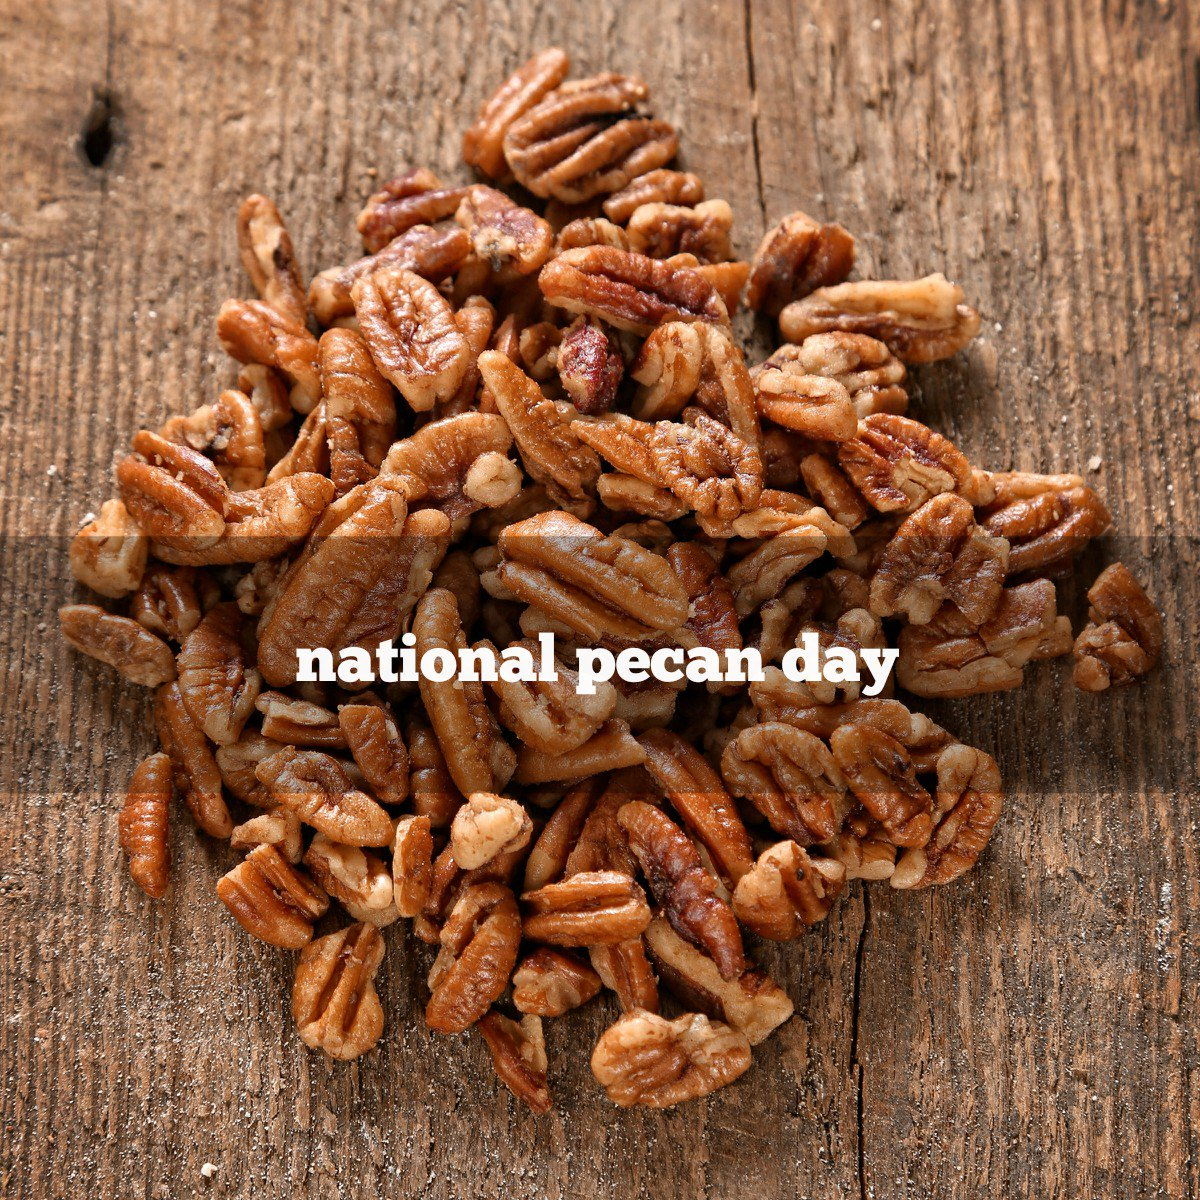 April 14th is National Pecan Day https://t.co/yntAkQeBNm #NationalPecanDay #GoodFriday #goodfriday2017 https://t.co/fl97WGvdzC